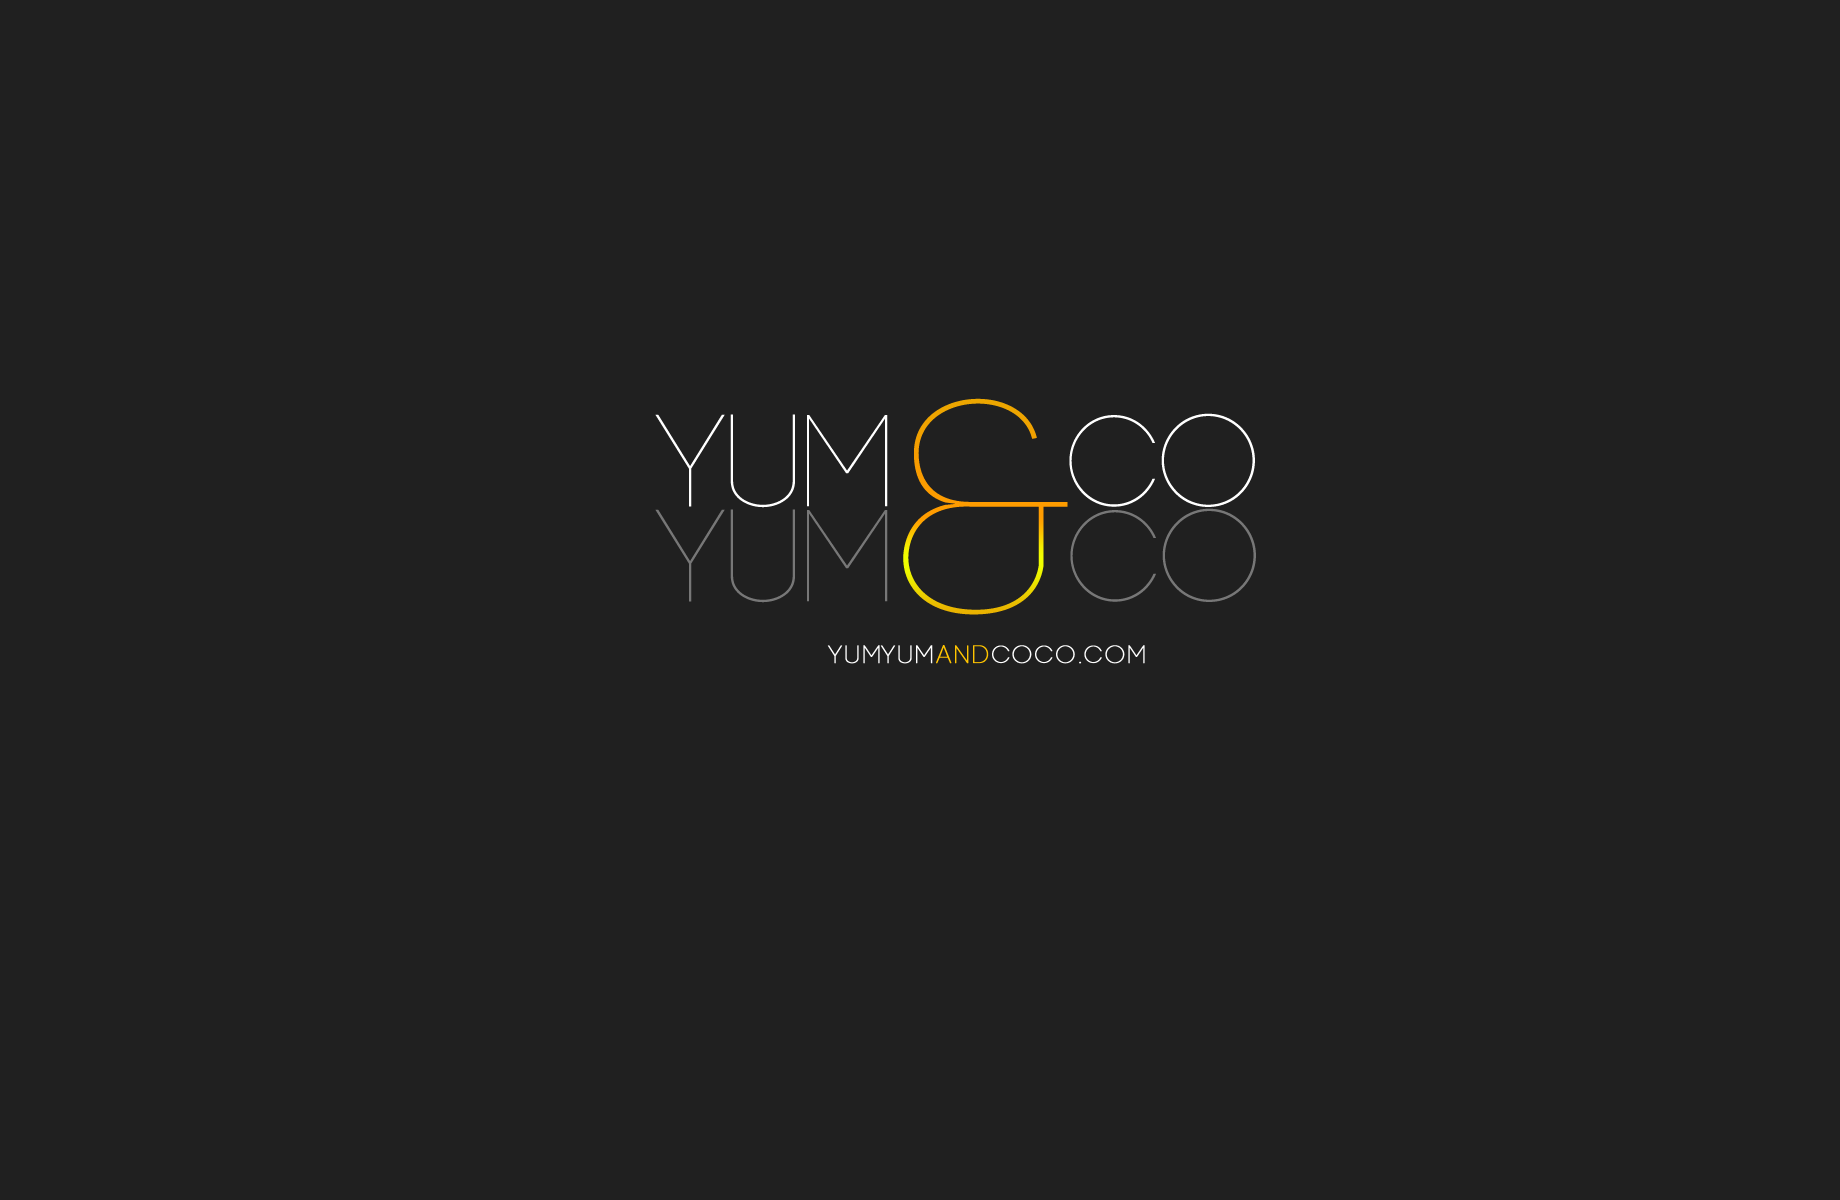 Logo Design by Jan Chua - Entry No. 67 in the Logo Design Contest Logo Design for YumYum & CoCo.